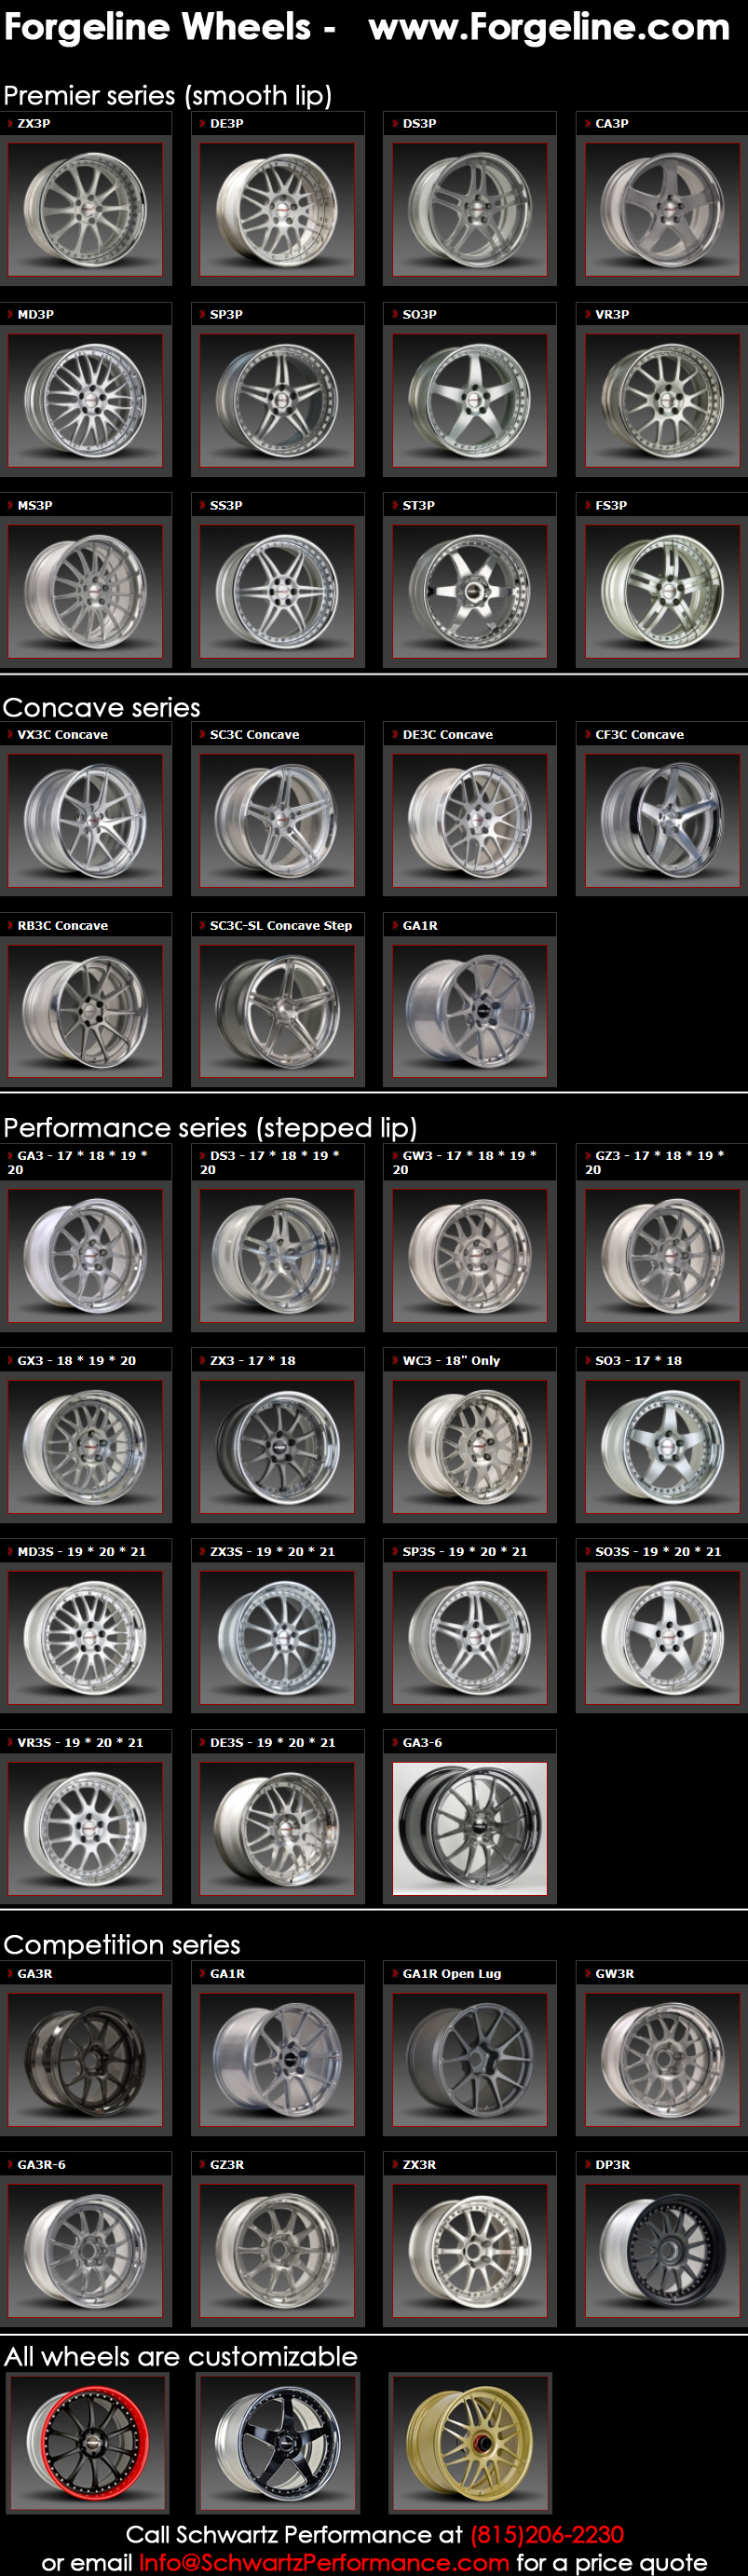 All Forgeline wheels apr13